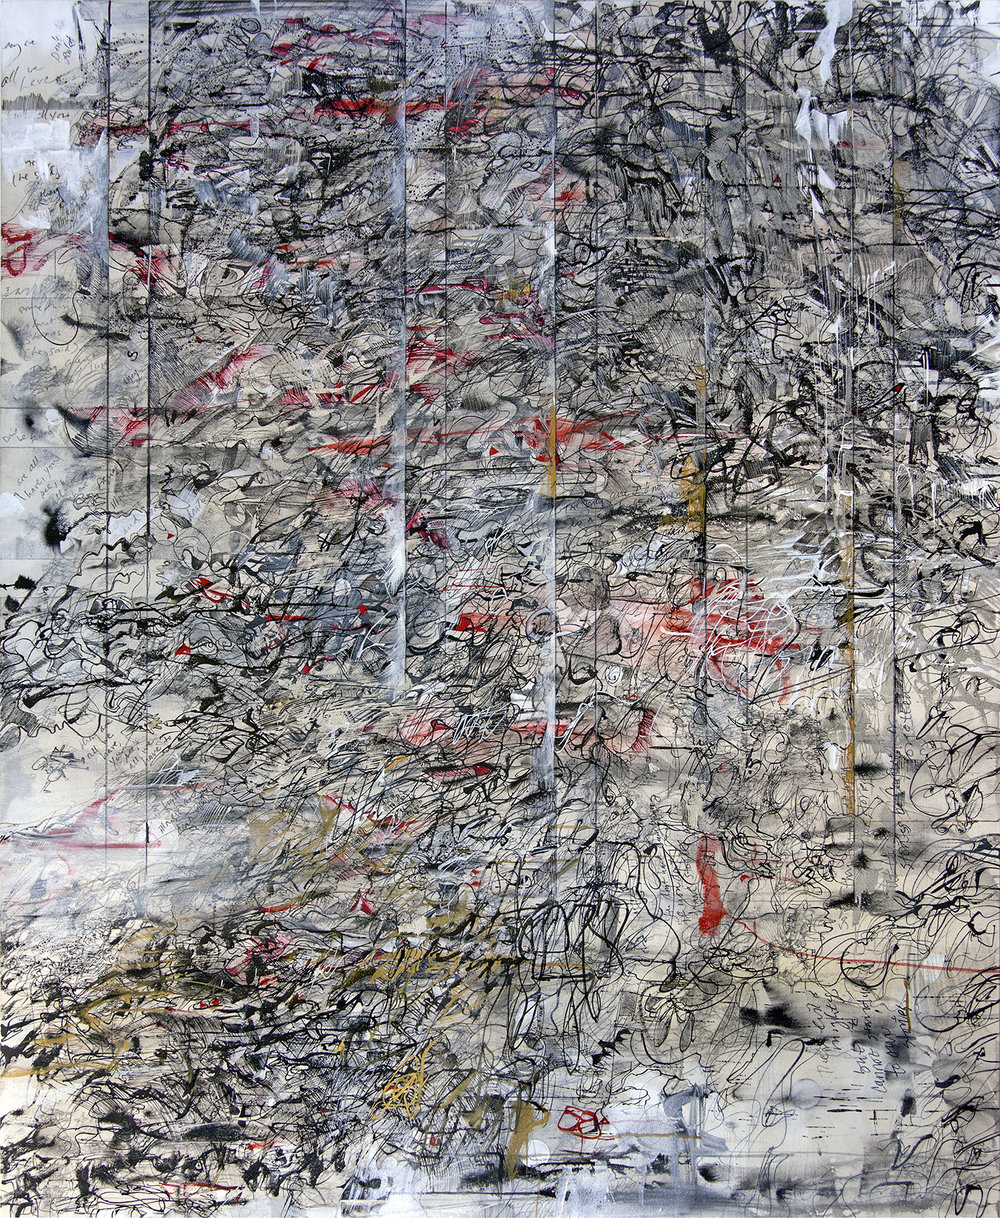 Moonbeam Redaction, Christine McPhee. -  shellac-based and acrylic inks, watercolor, graphite, rabbit skin glue on canvasCollection of the Center for Corporeal Writing, Portland, OregonText in the painting is from